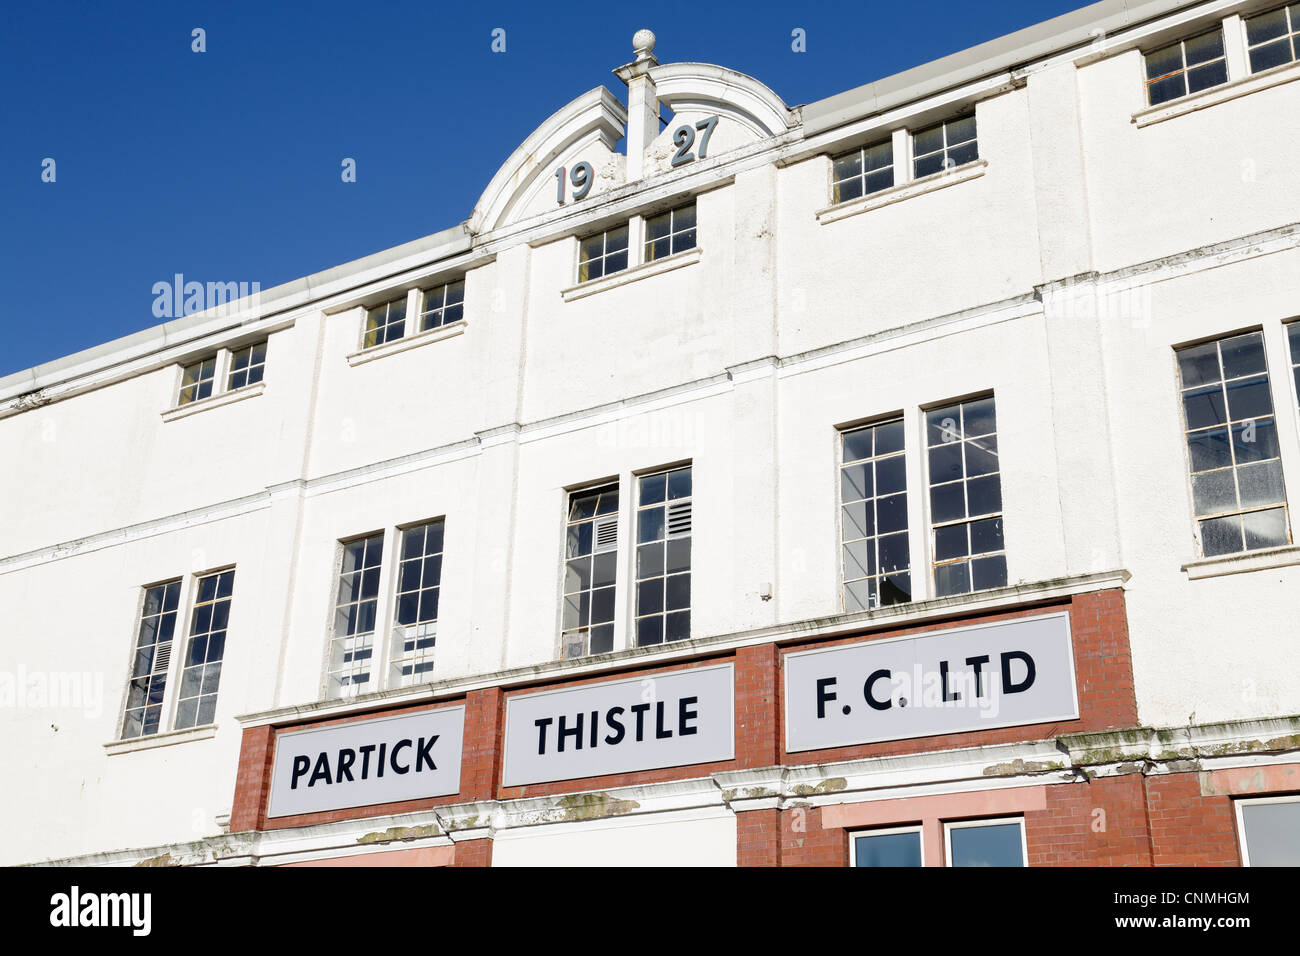 The front facade of the Firhill Main Stand the home of Partick Thistle Football Club in Glasgow, Scotland, UK - Stock Image